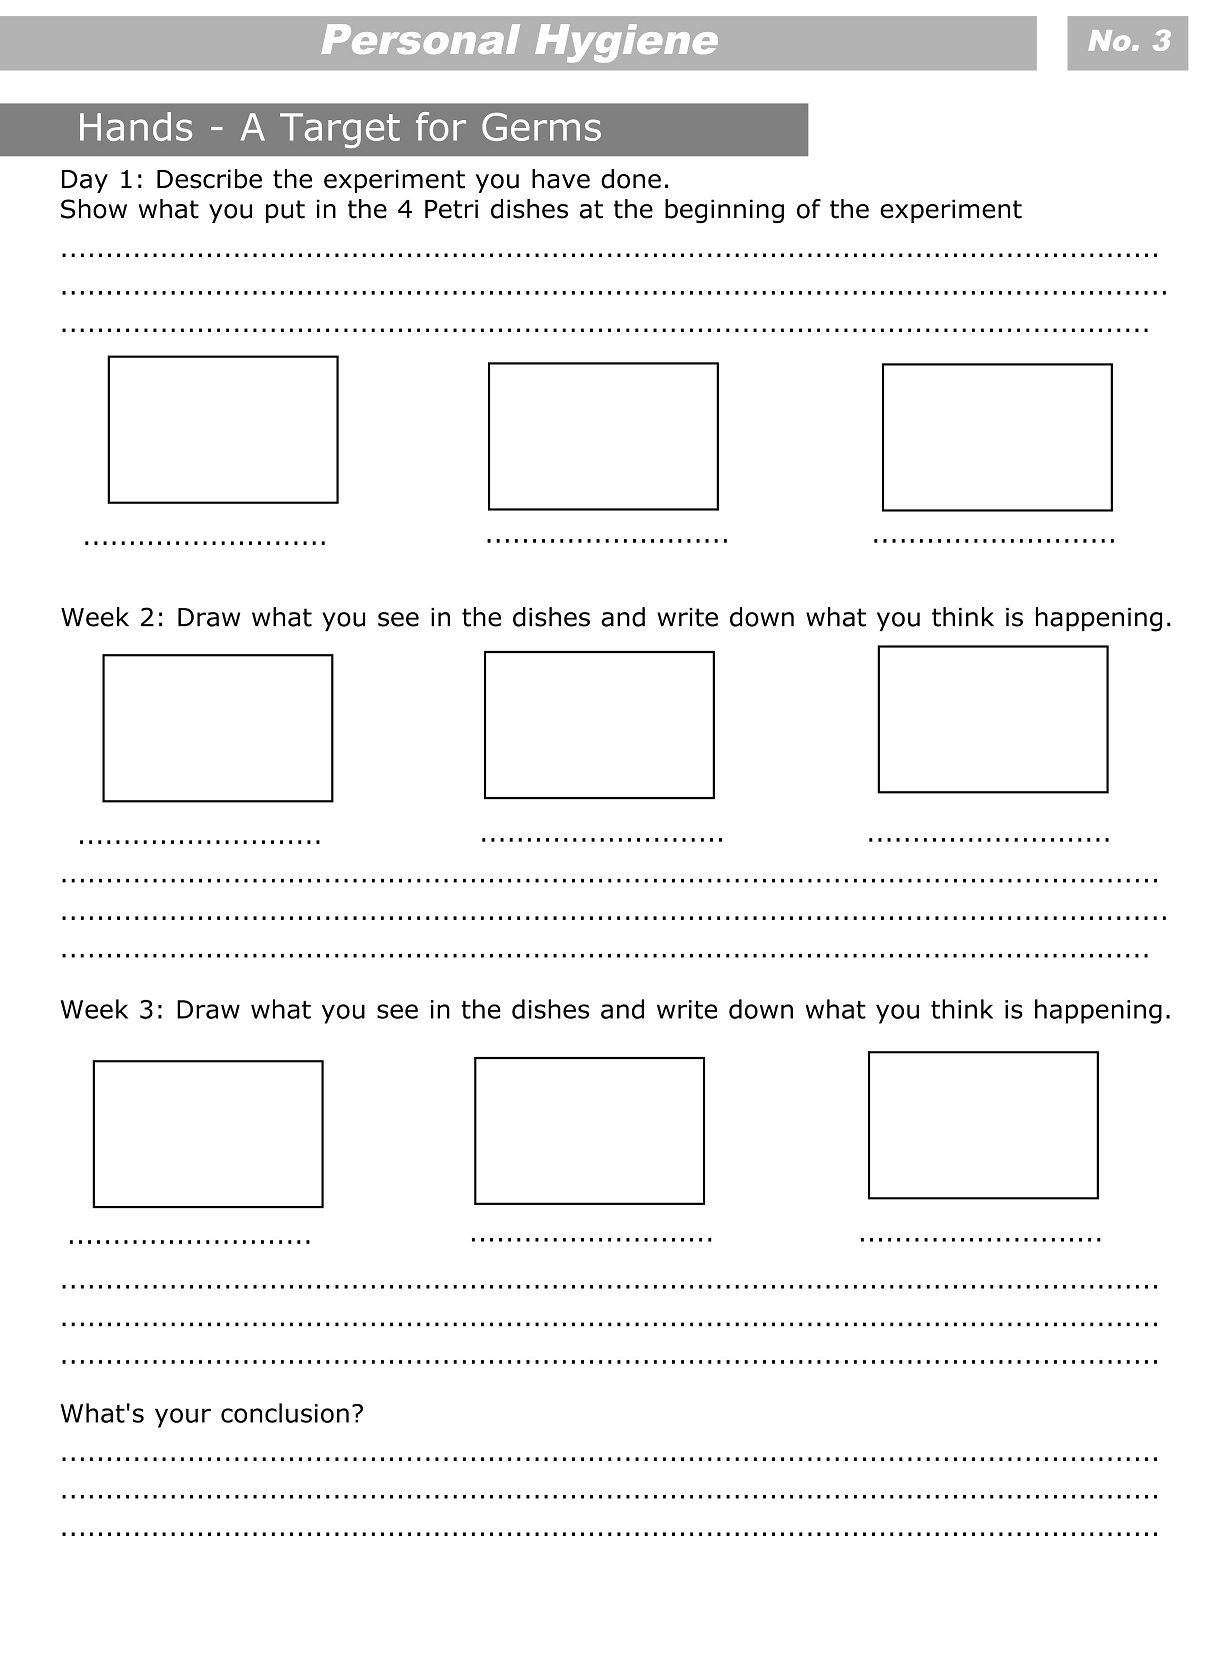 Personal Hygiene Worksheets For Kids Level 3 3